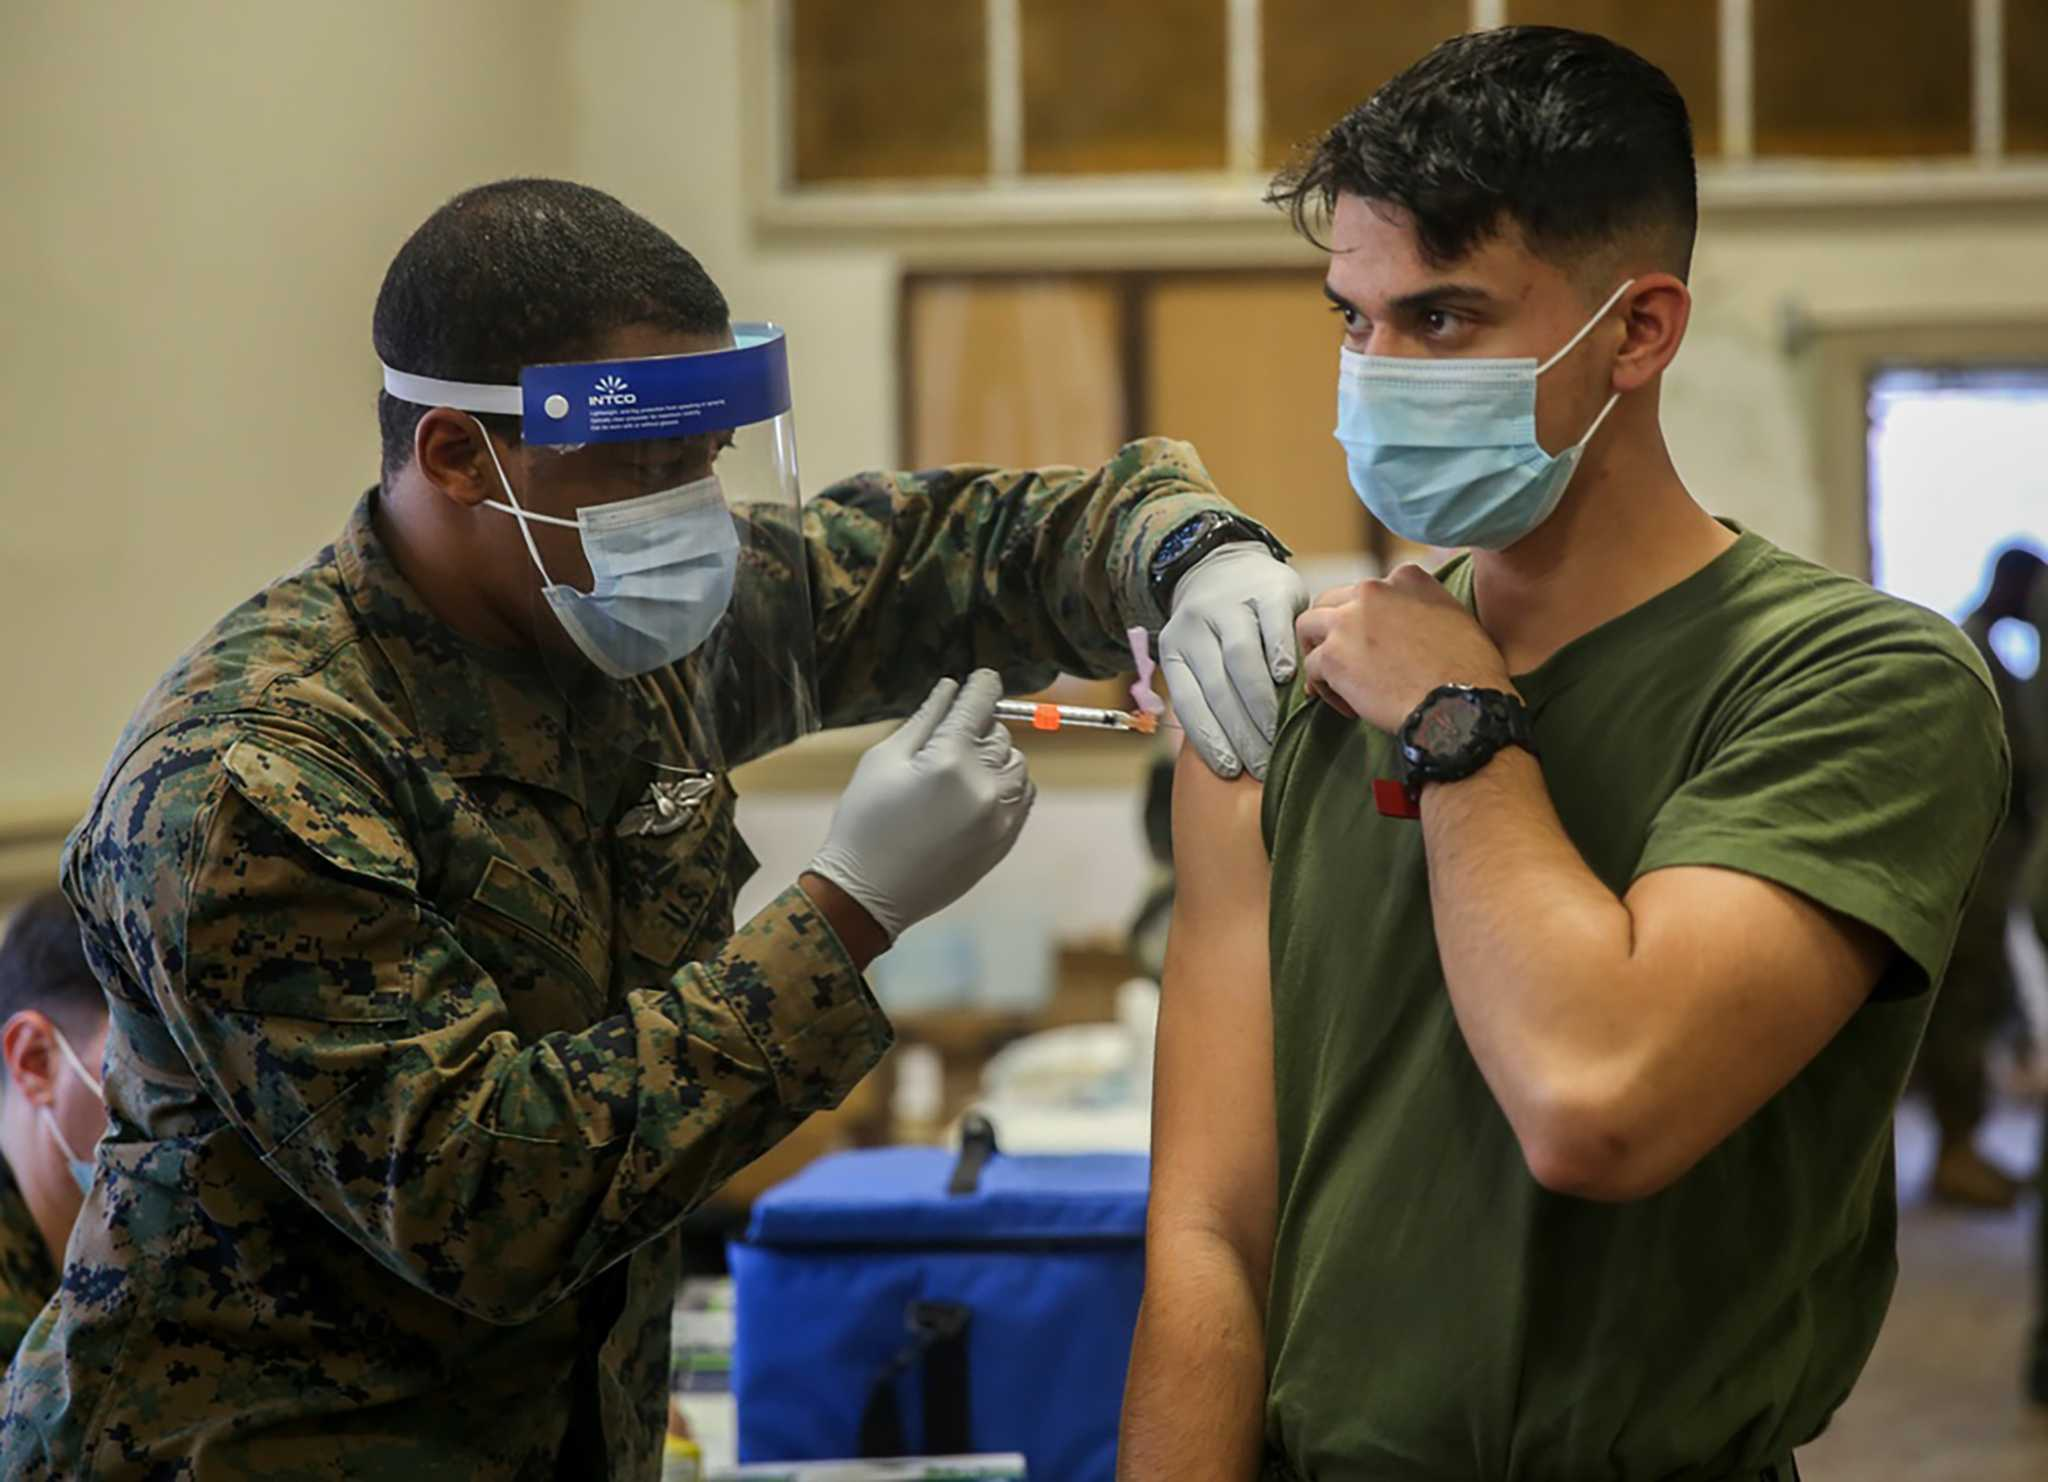 Hundreds of thousands of U.S. troops have not yet complied with vaccine mandate as deadlines near